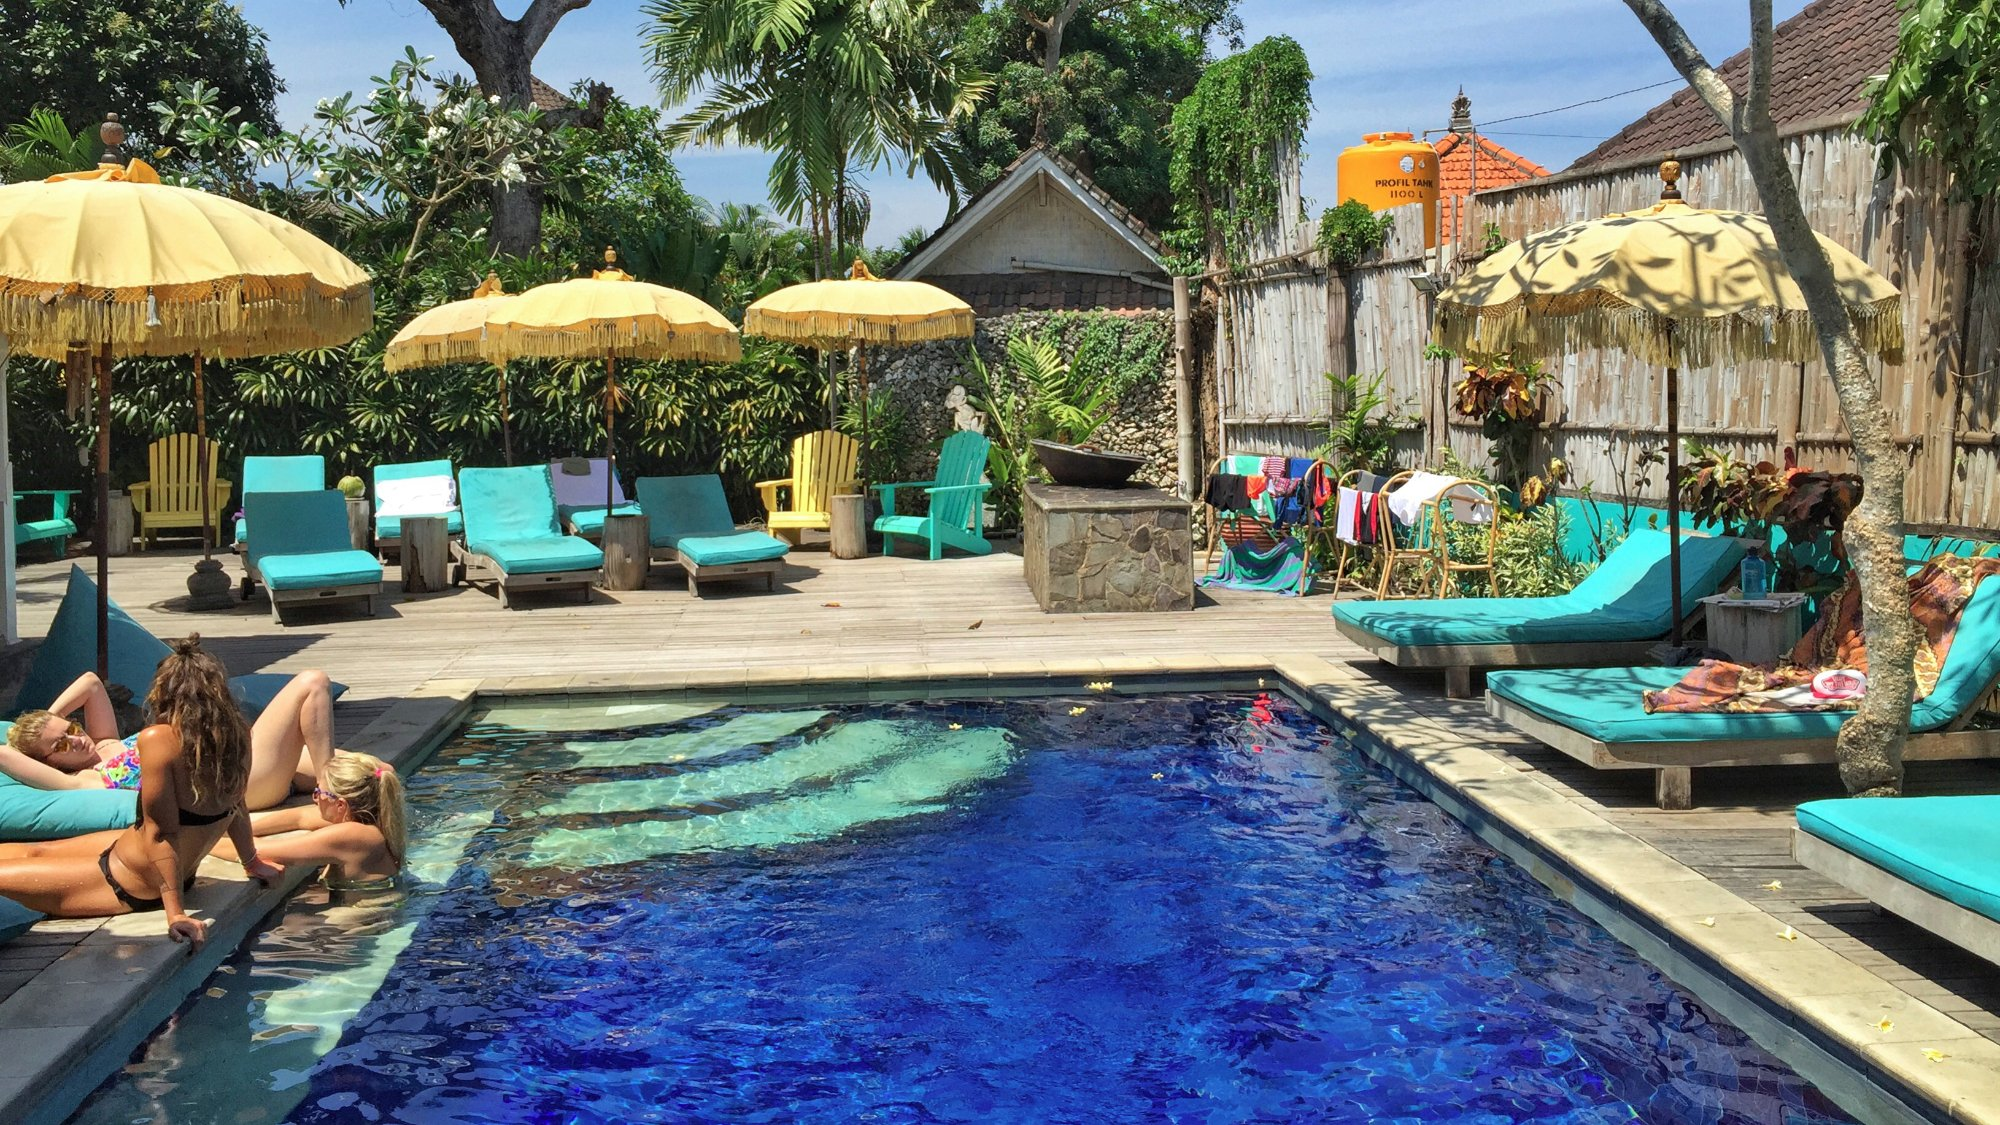 The Chillhouse - Bali Surf and Bike Retreats